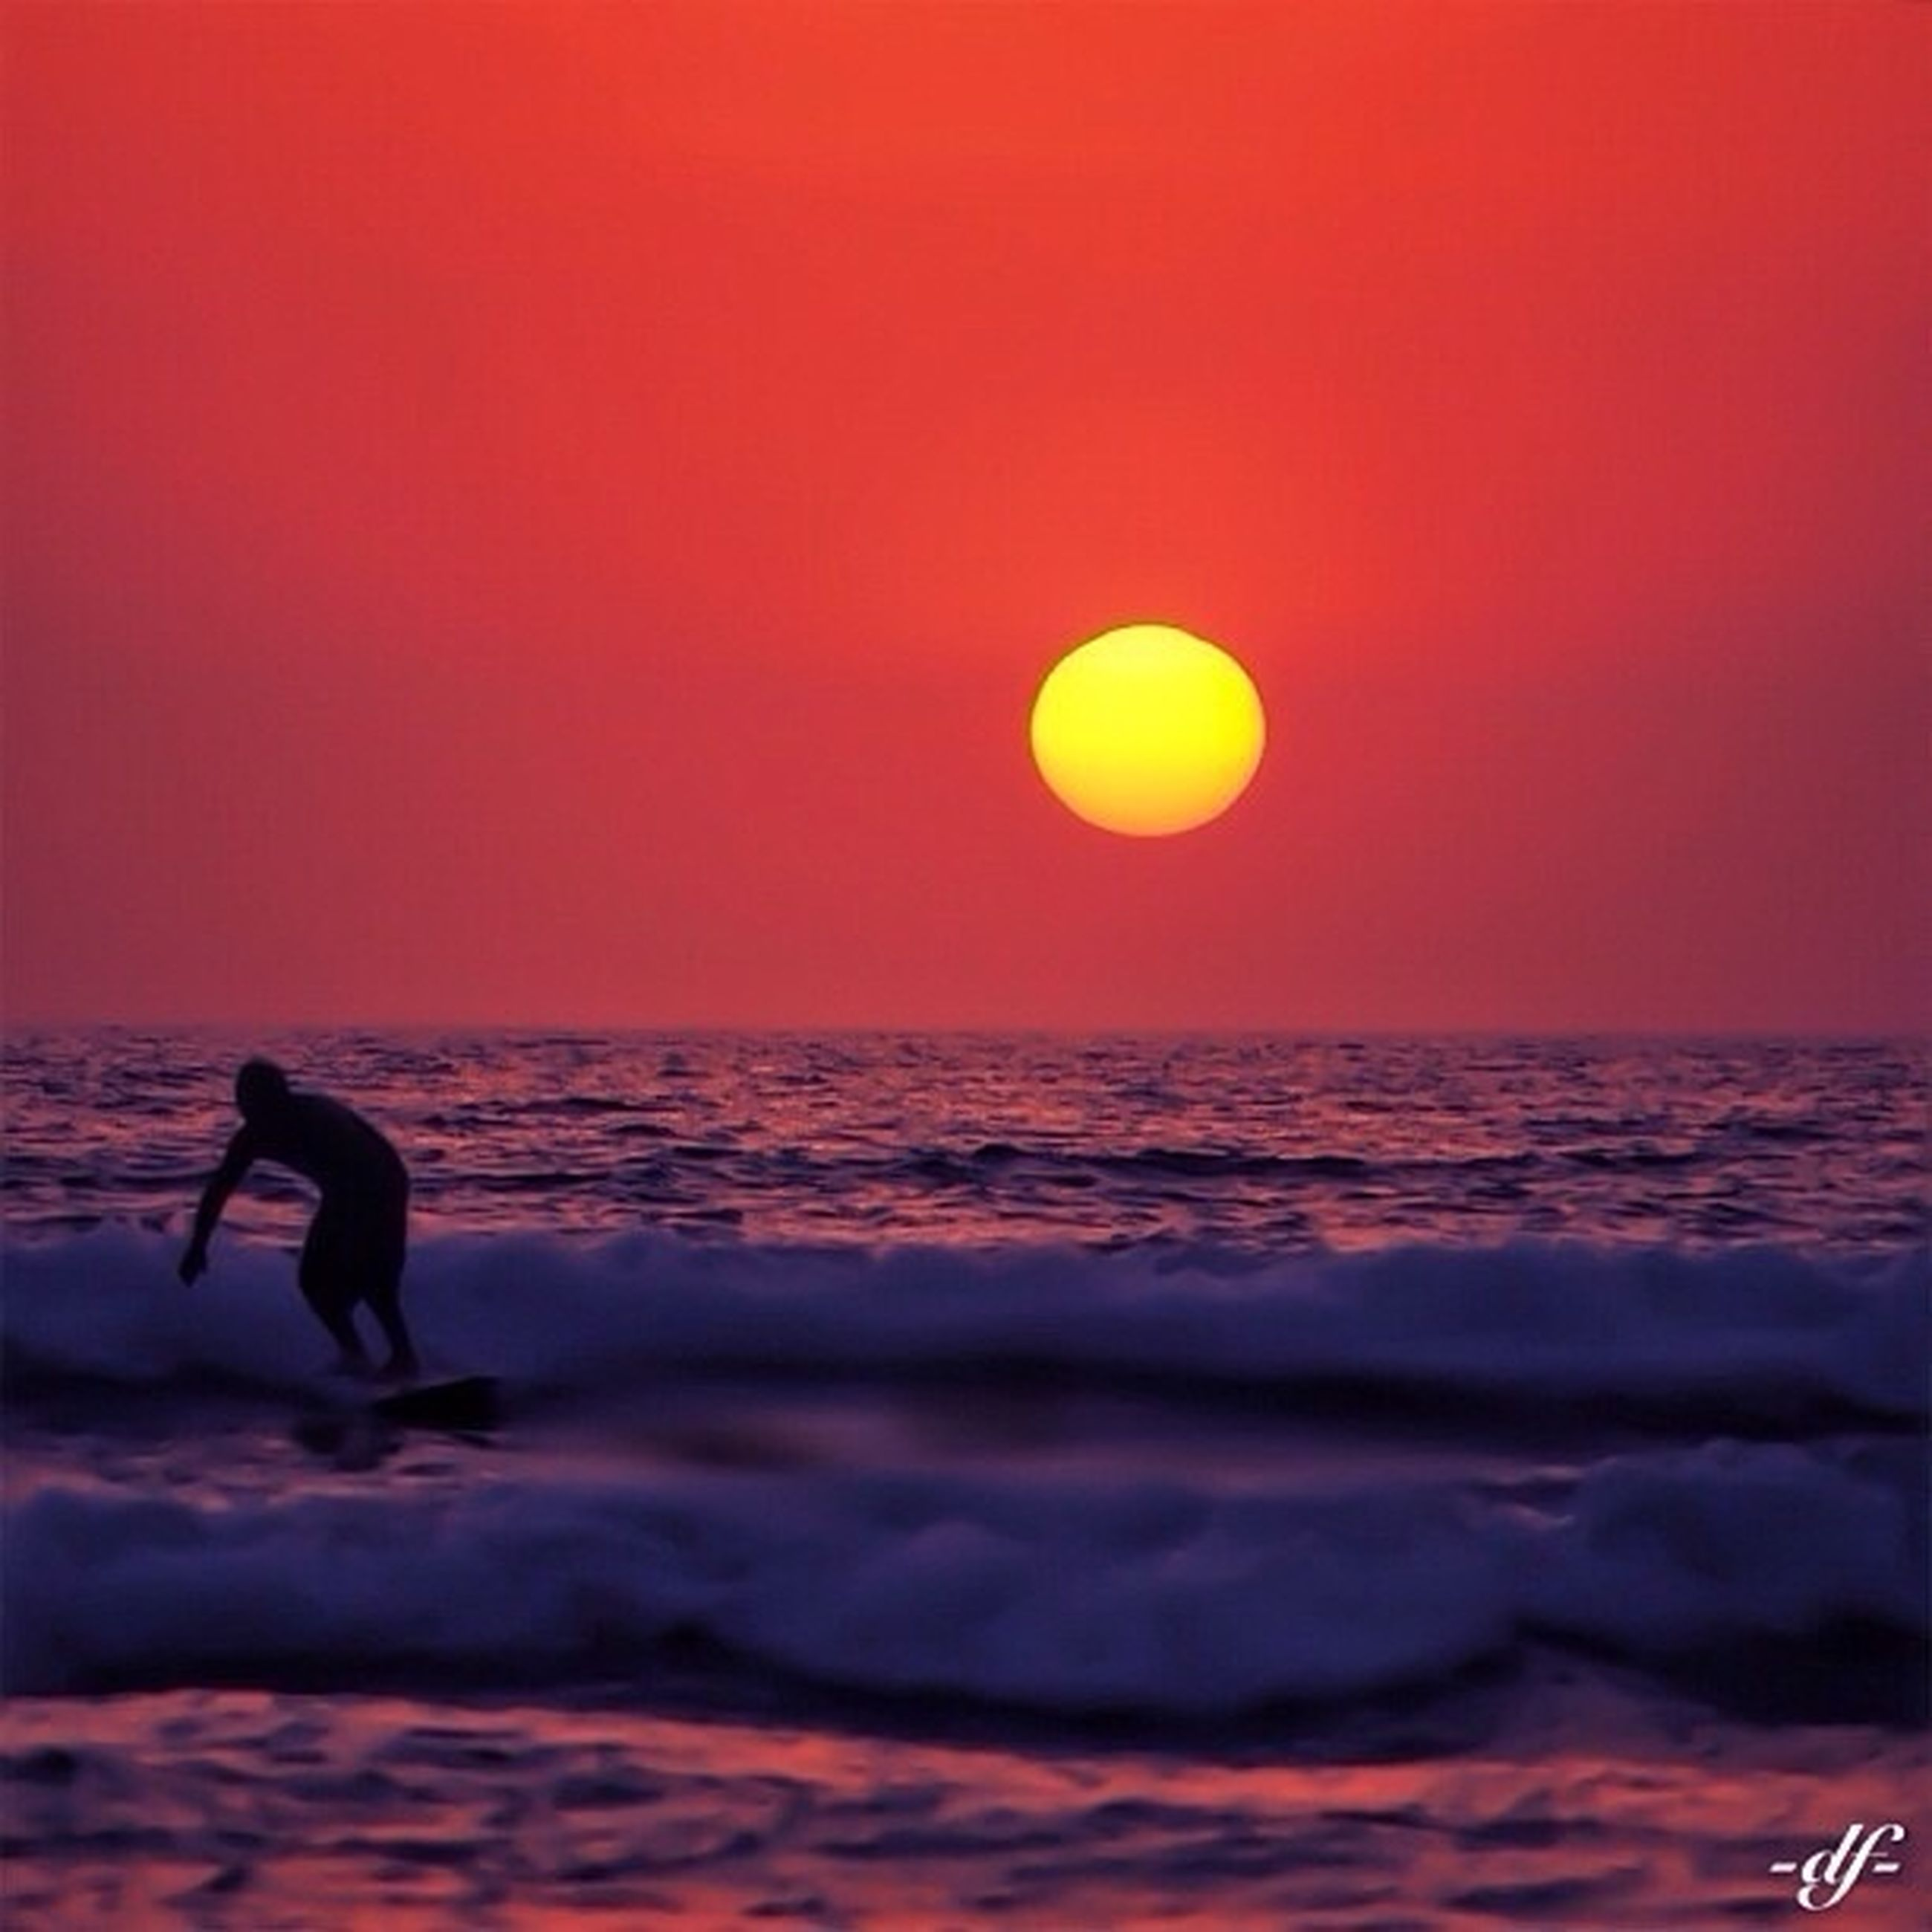 sunset, sea, horizon over water, leisure activity, water, orange color, beach, lifestyles, scenics, sun, silhouette, beauty in nature, tranquil scene, men, sky, tranquility, full length, nature